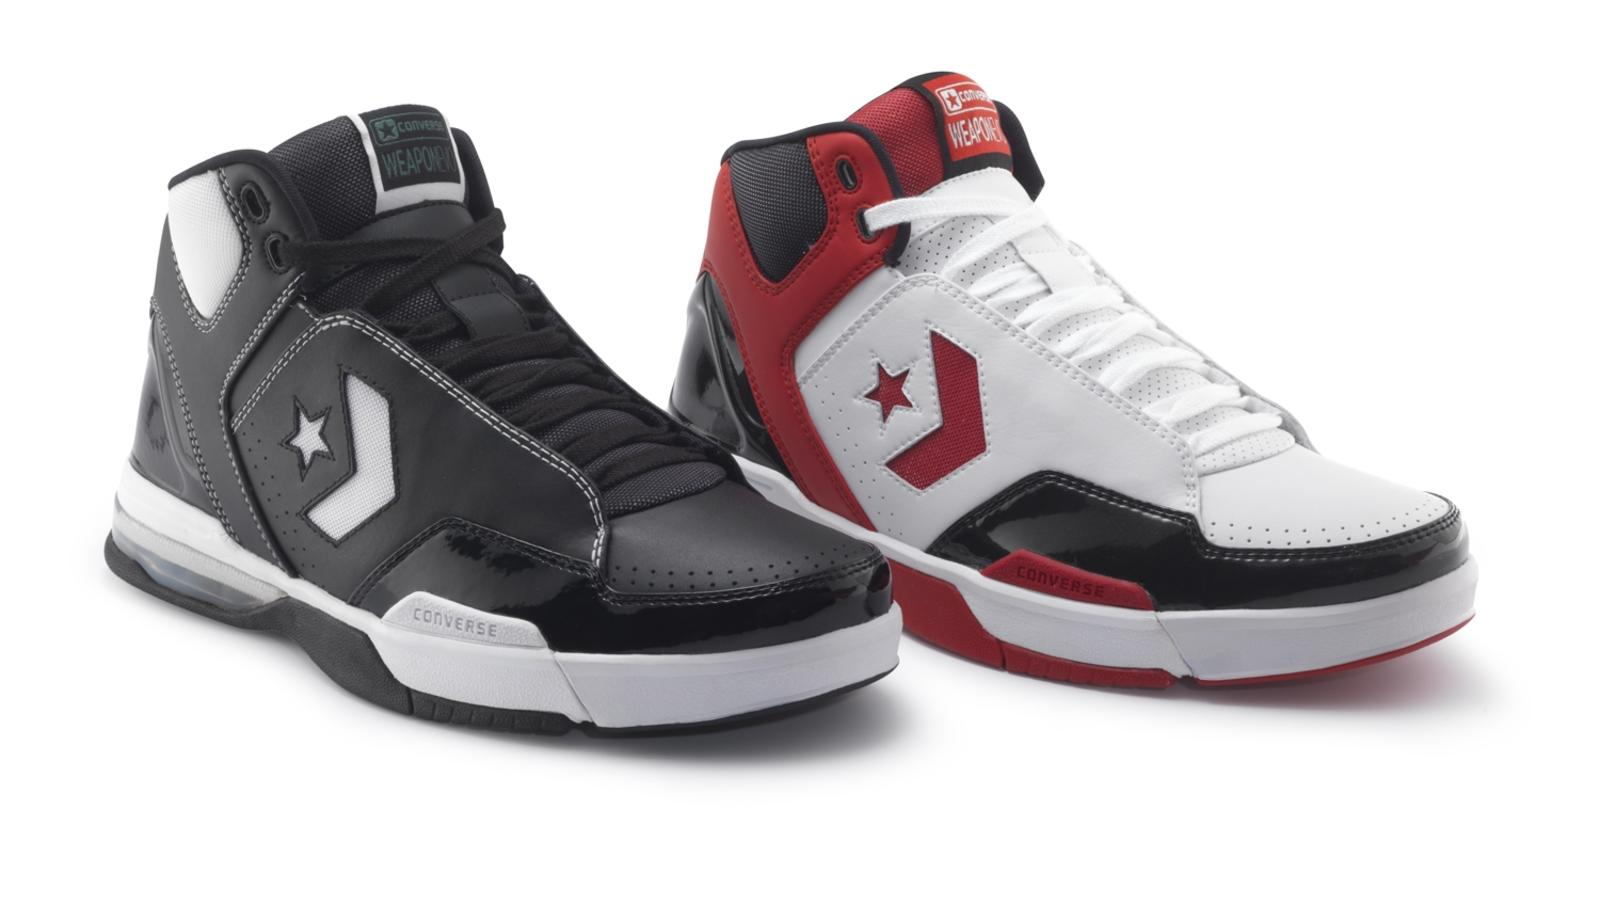 Converse's New Basketball Shoe Features